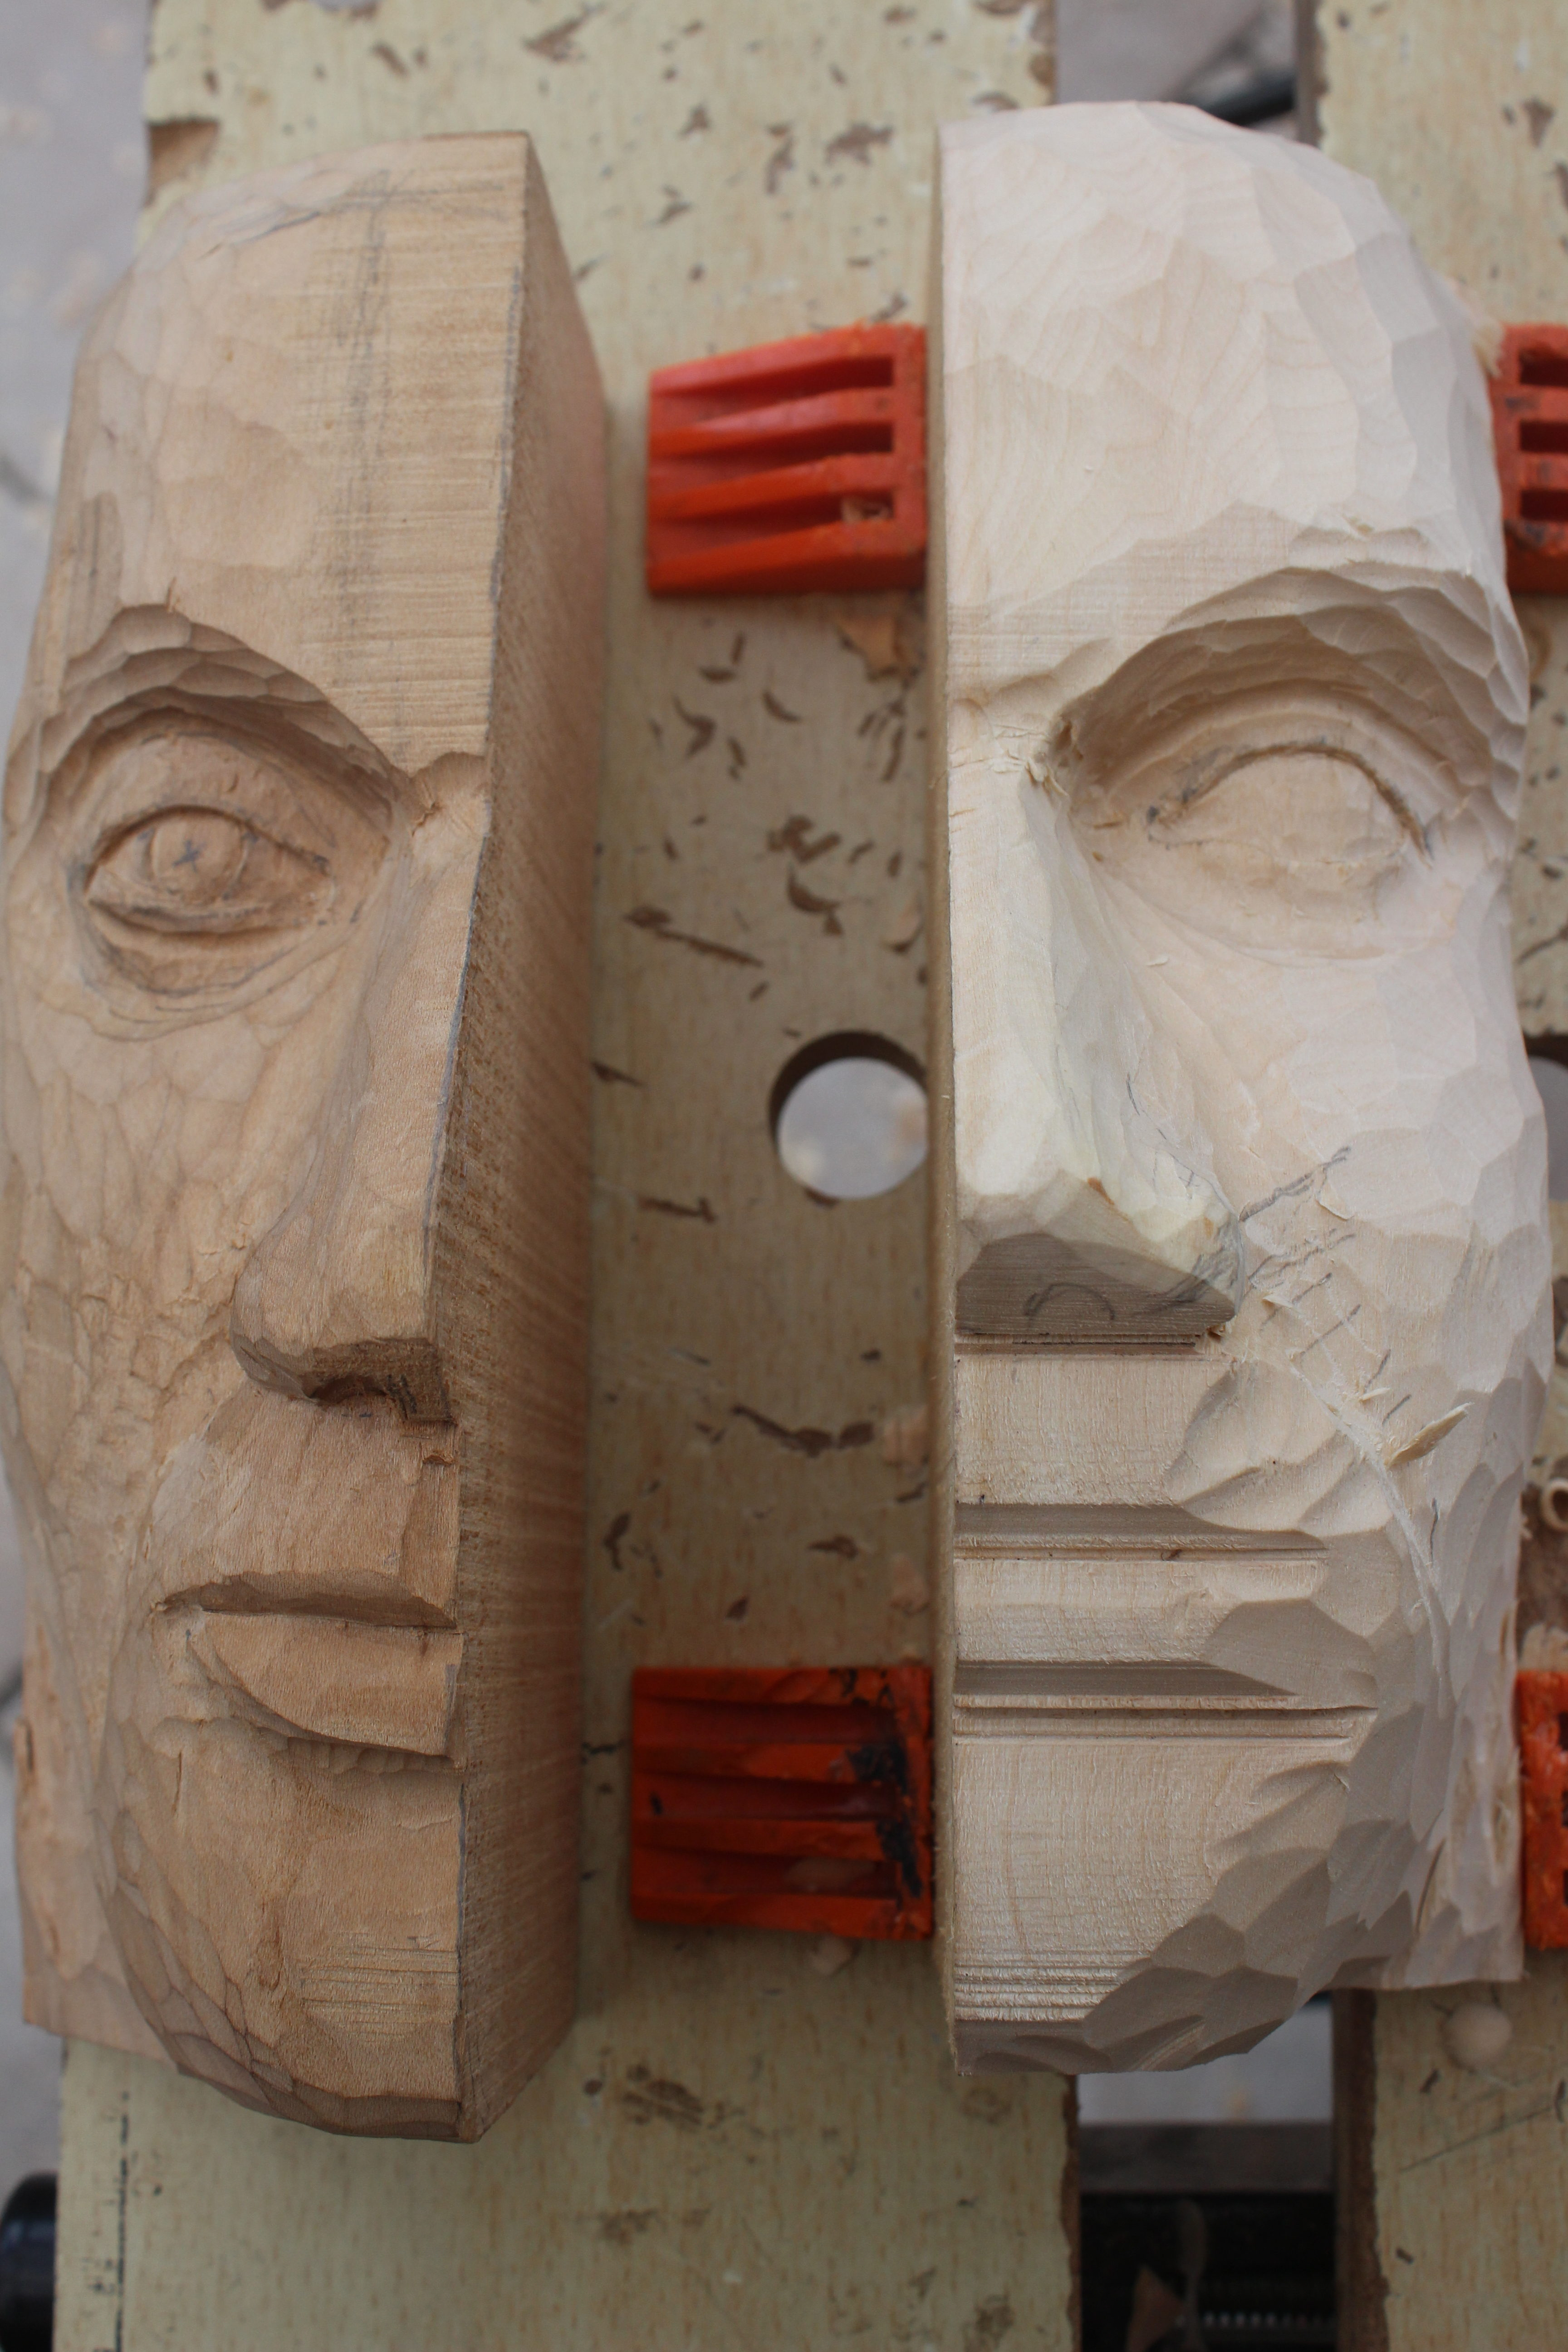 Chainsaw carver from thunder bay ready to cut into online market